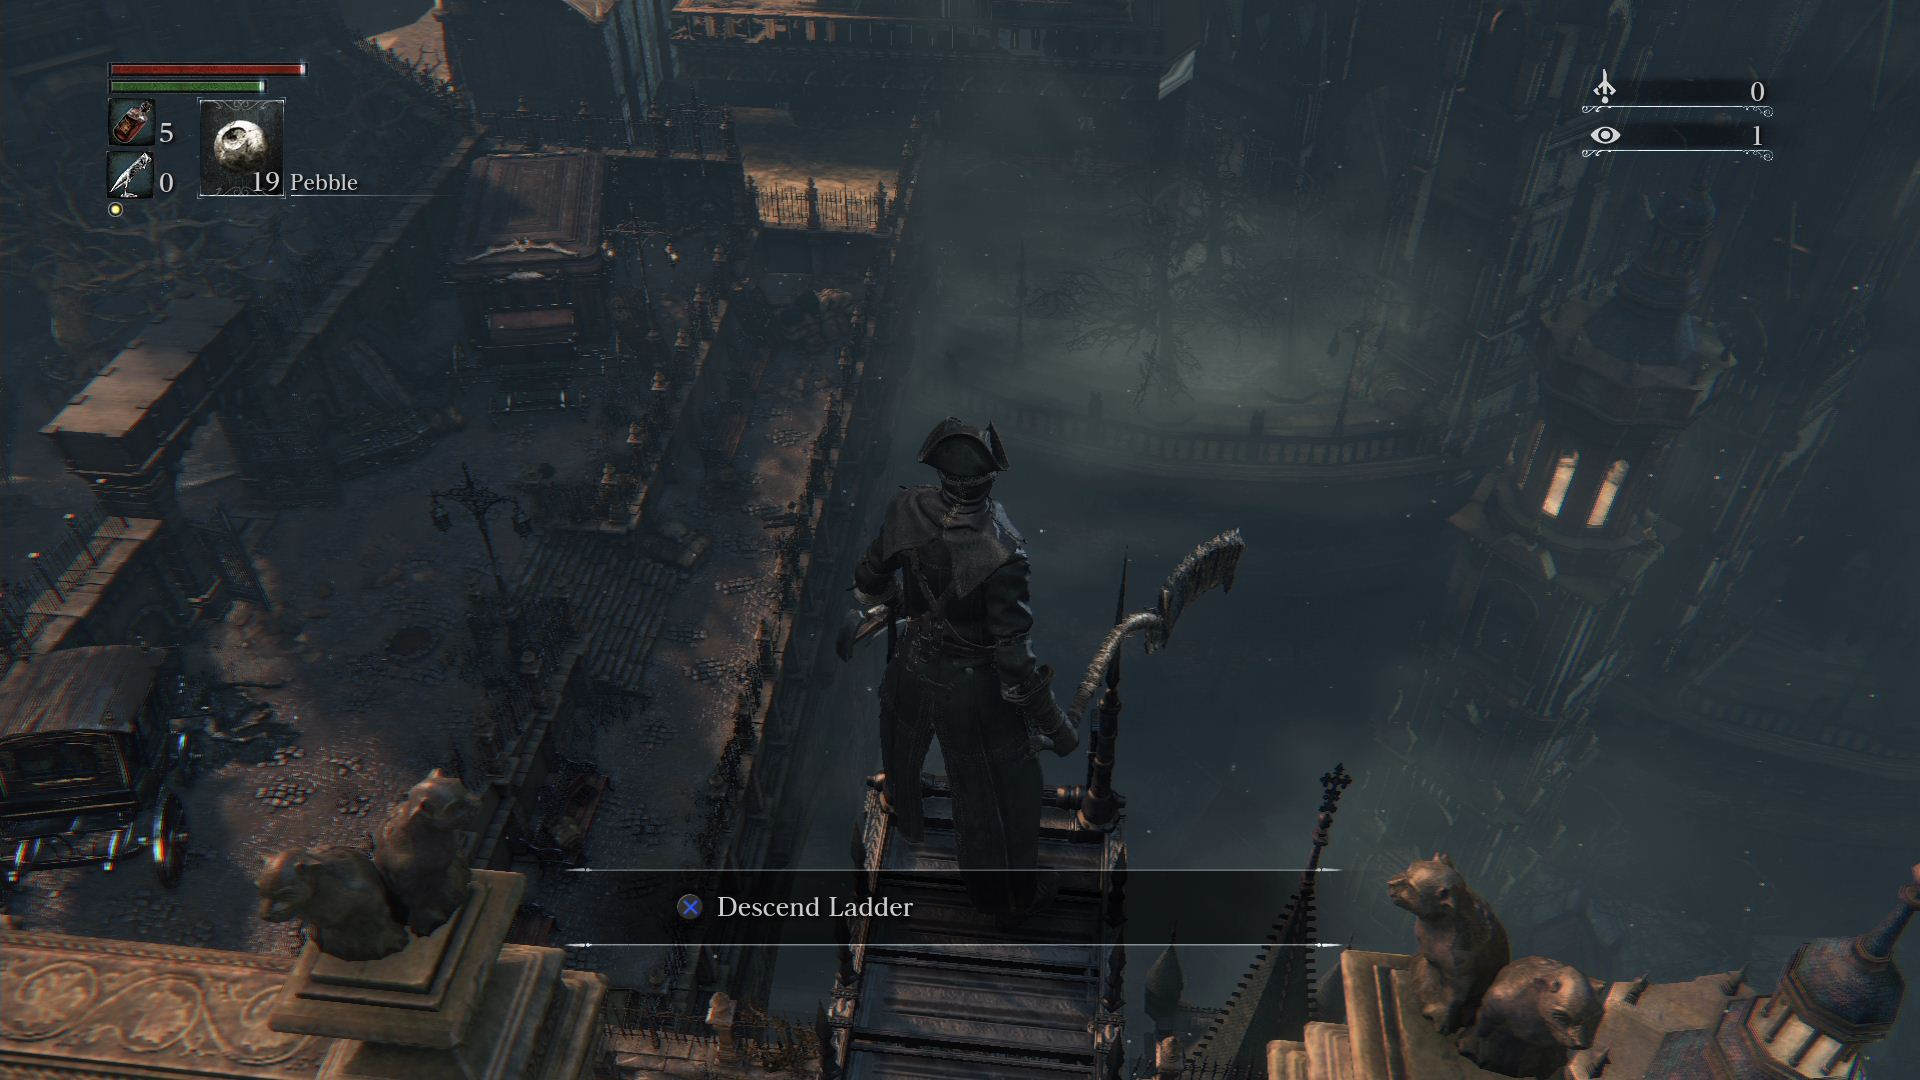 PS4 BLOODBORNE 4